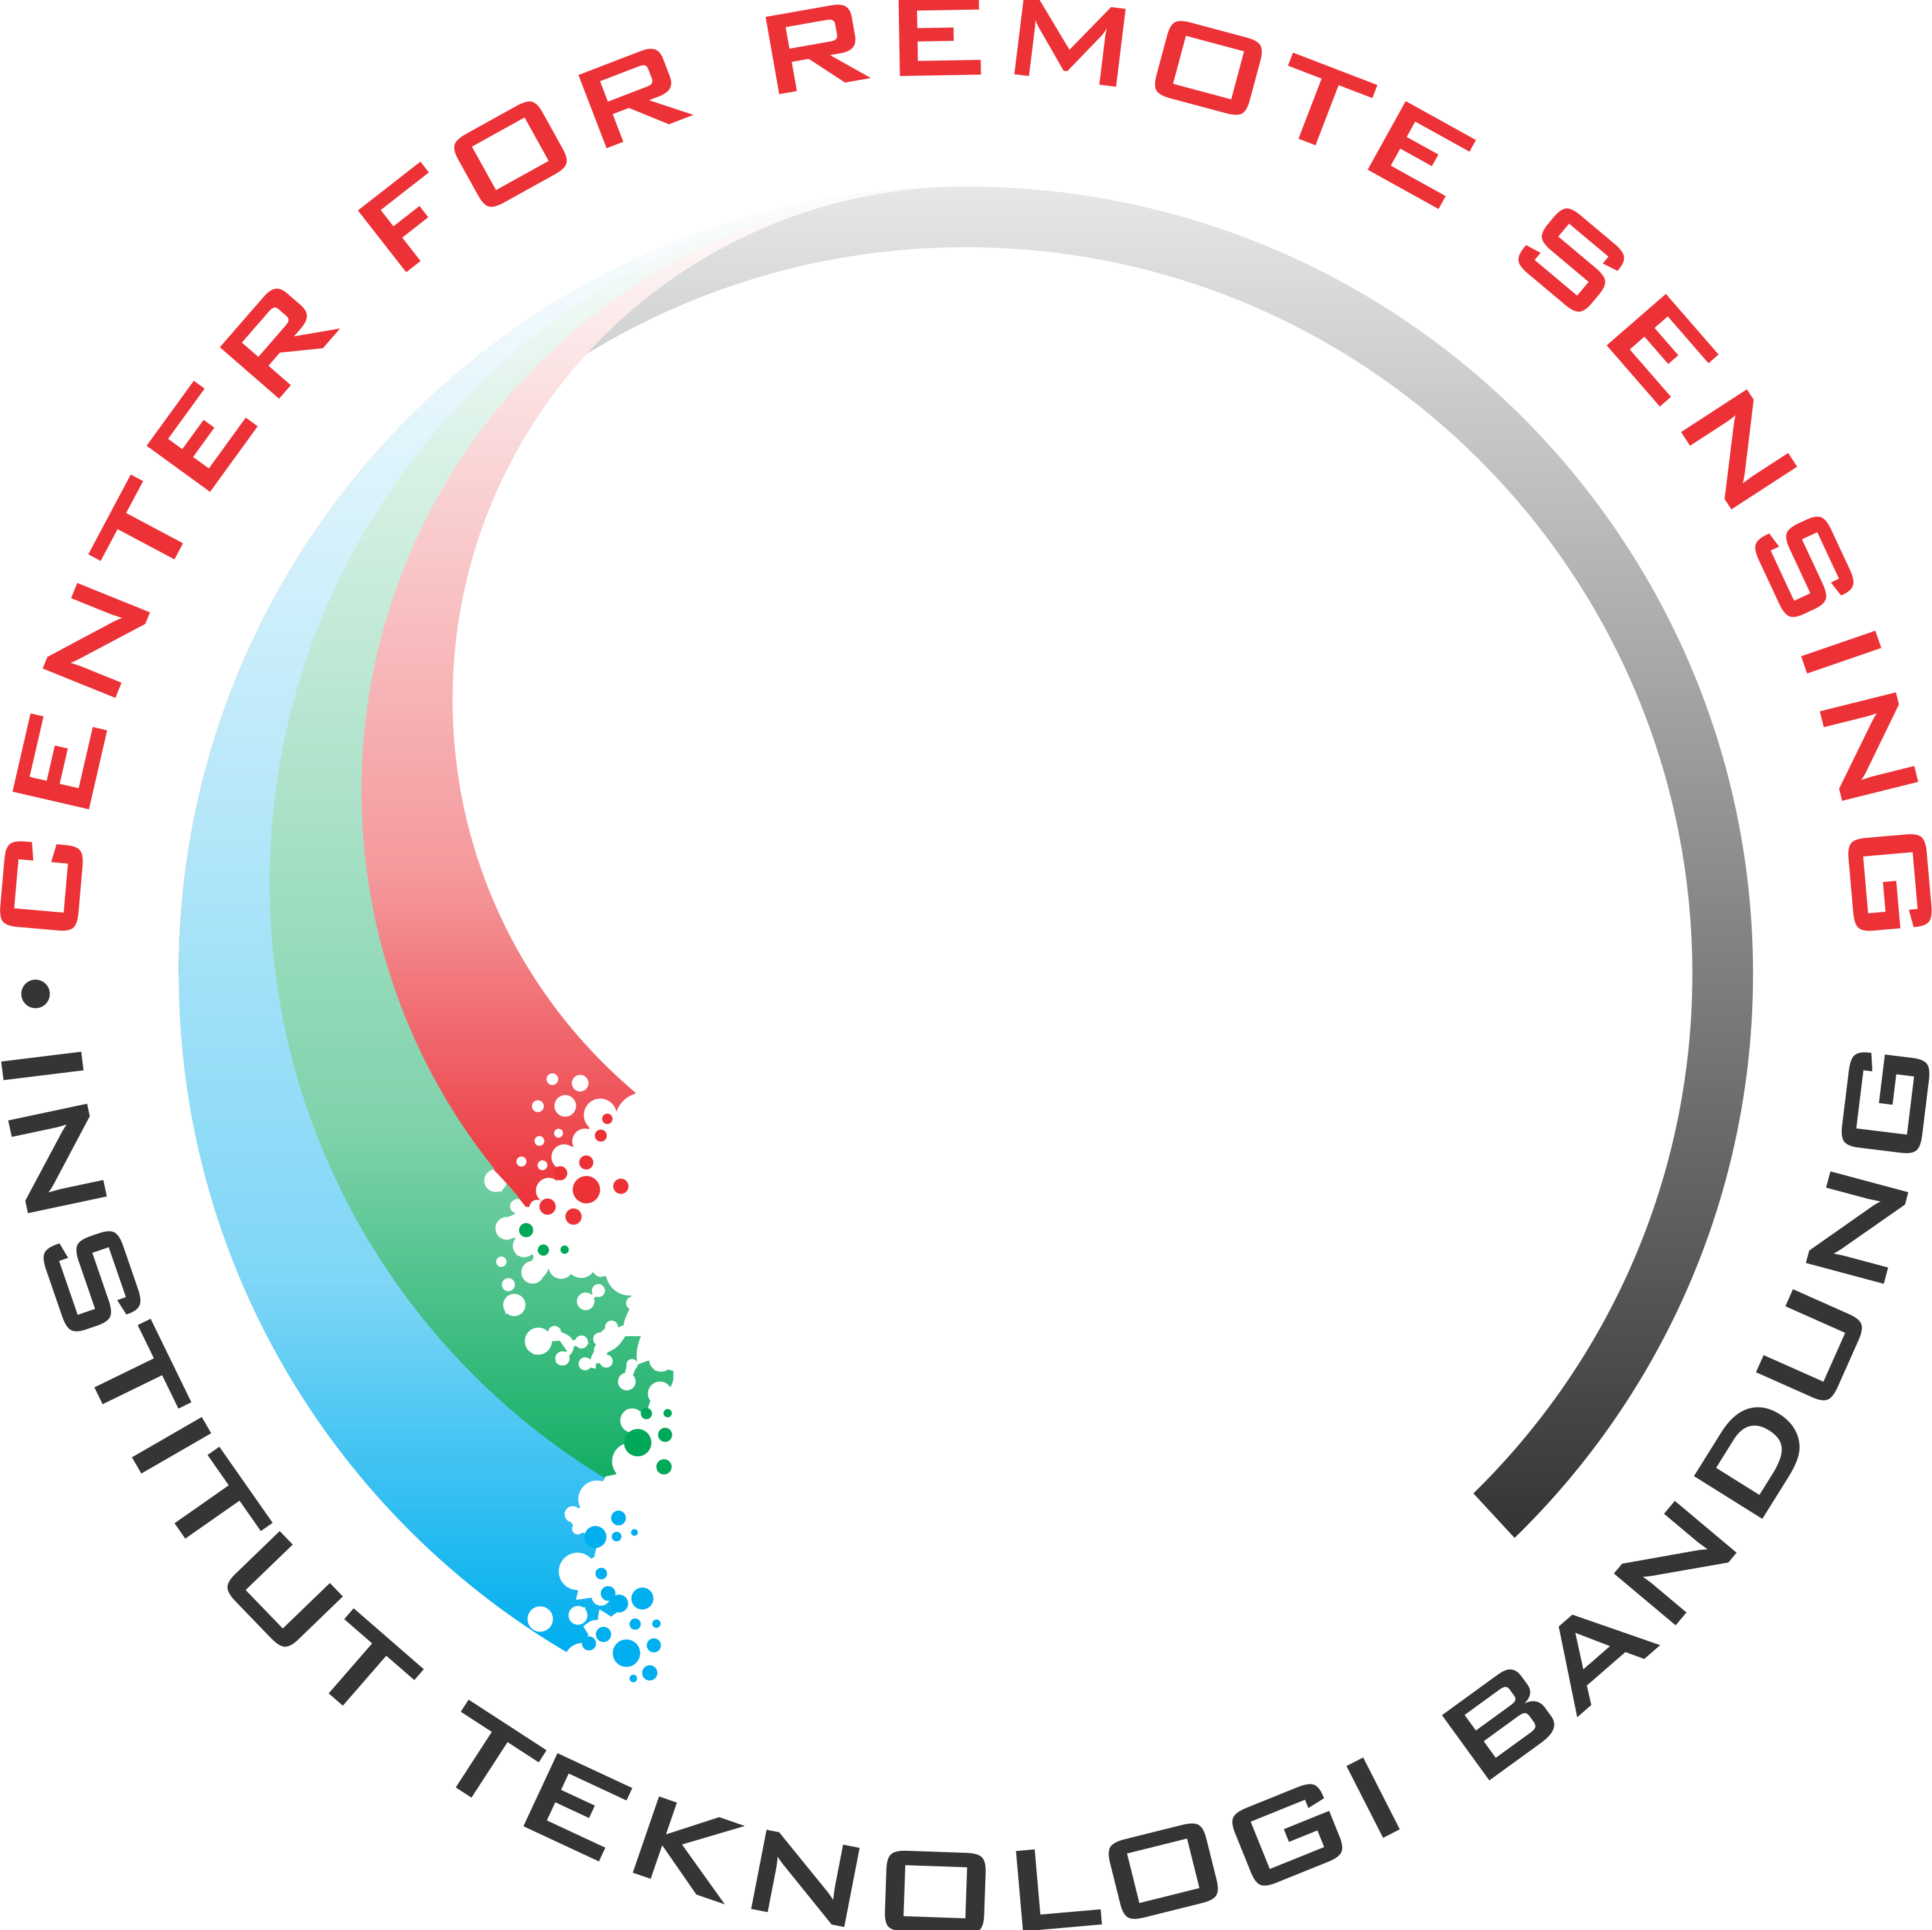 Center for Remote Sensing